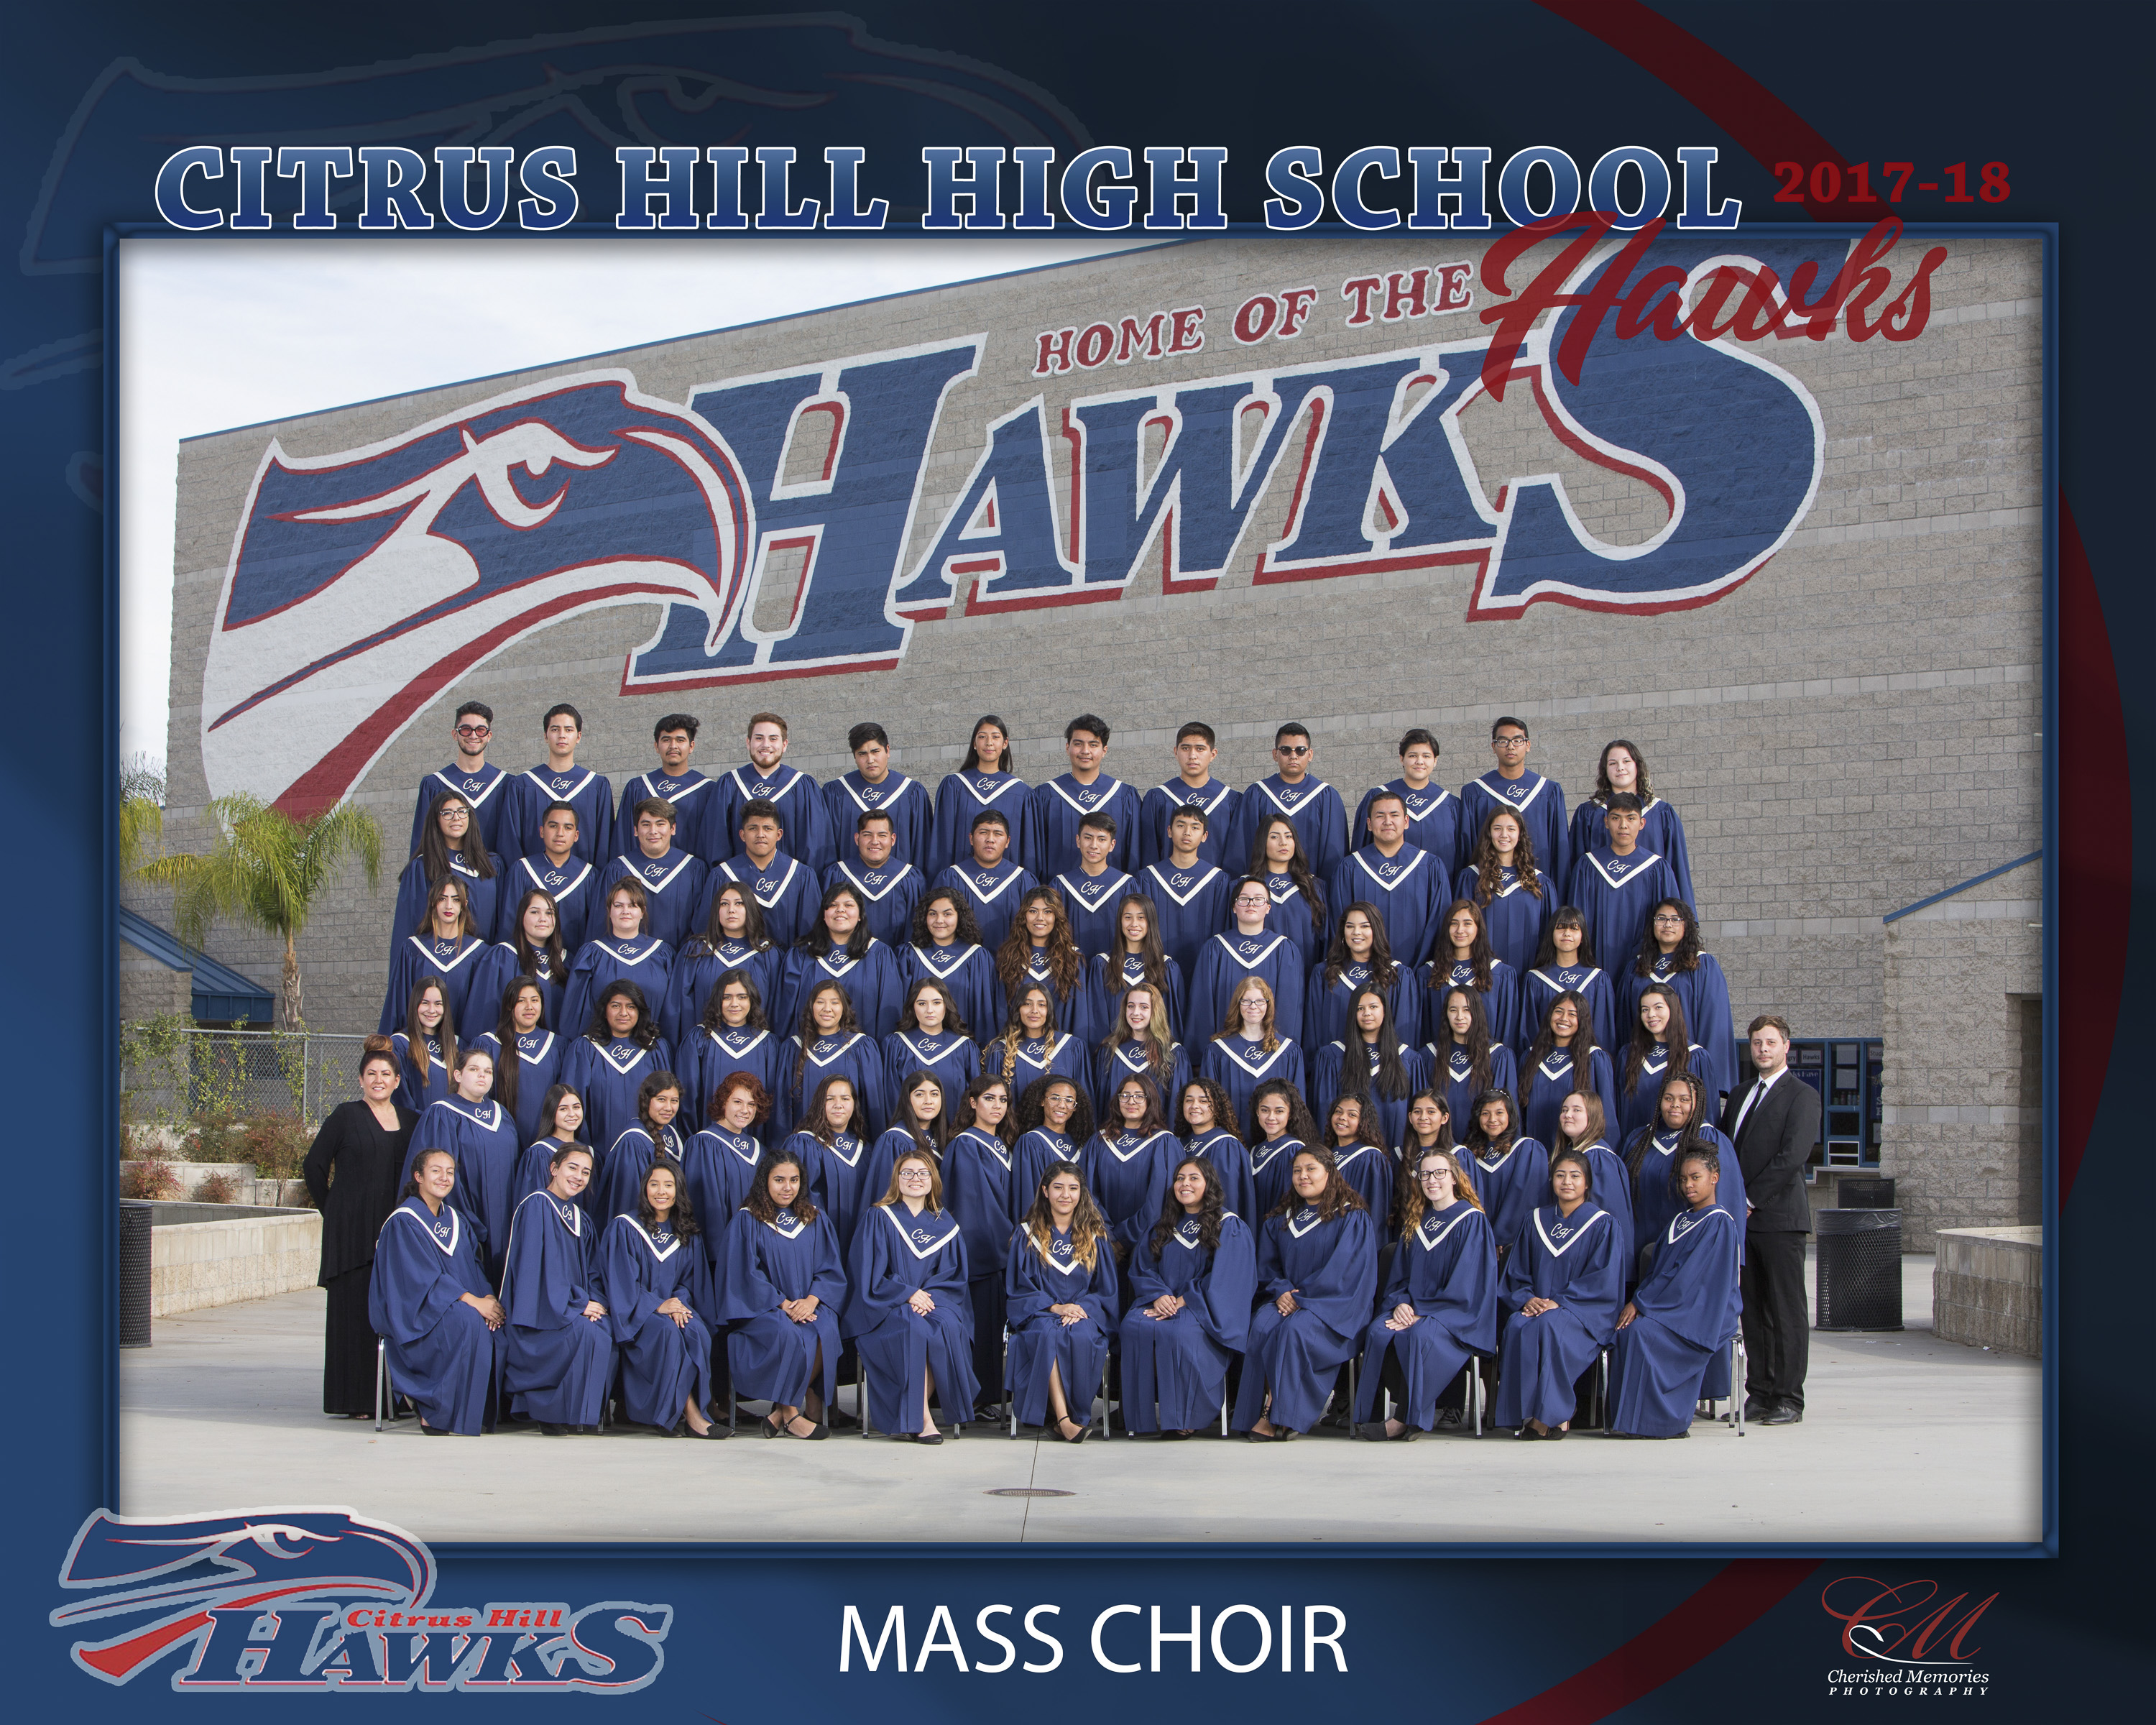 16x20 Mass Choir